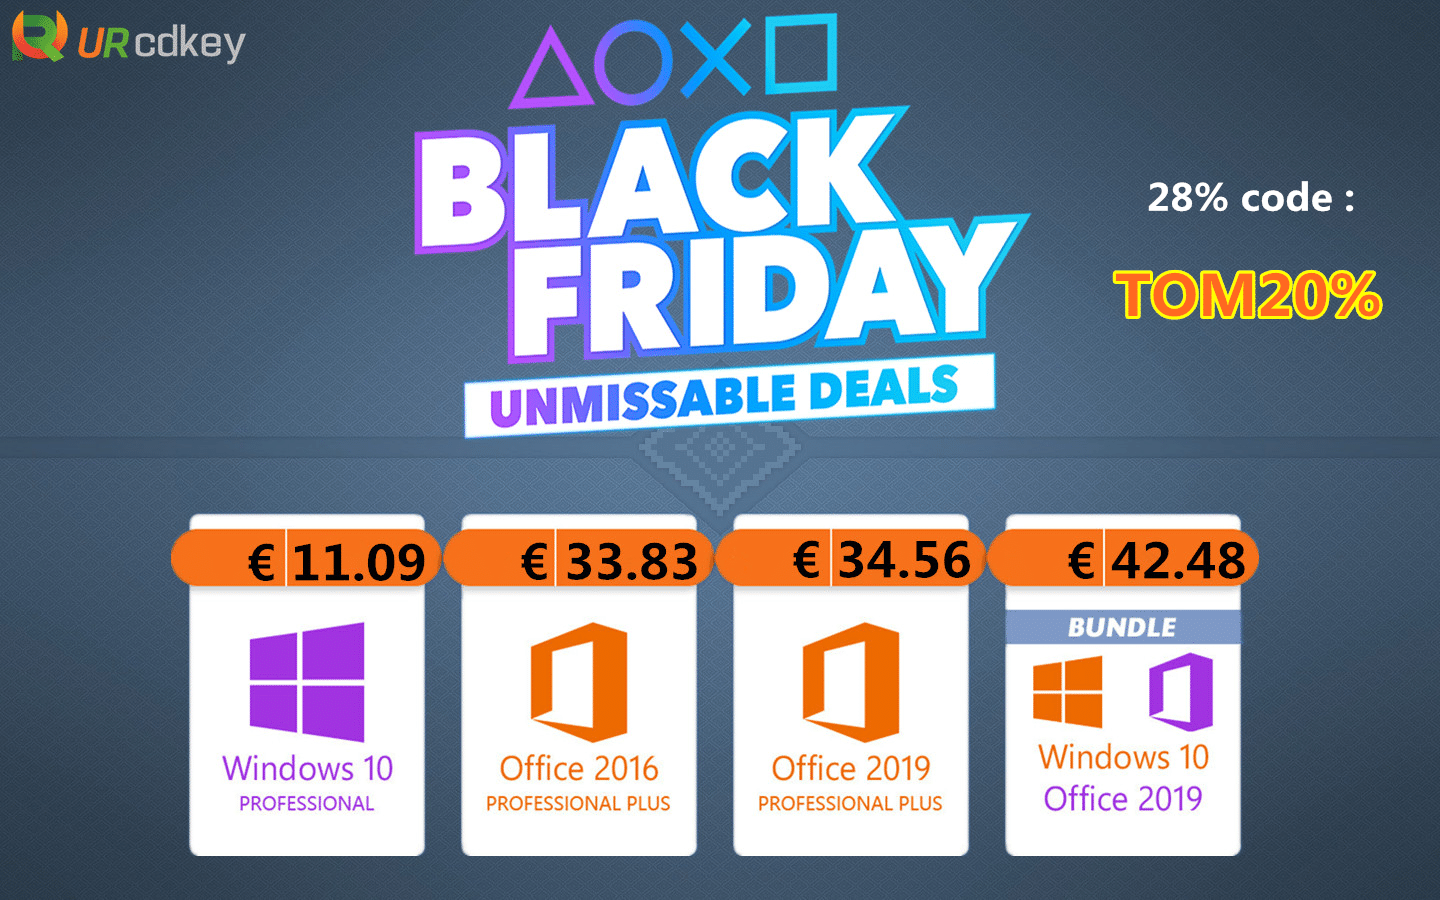 Urcdkey Black Friday